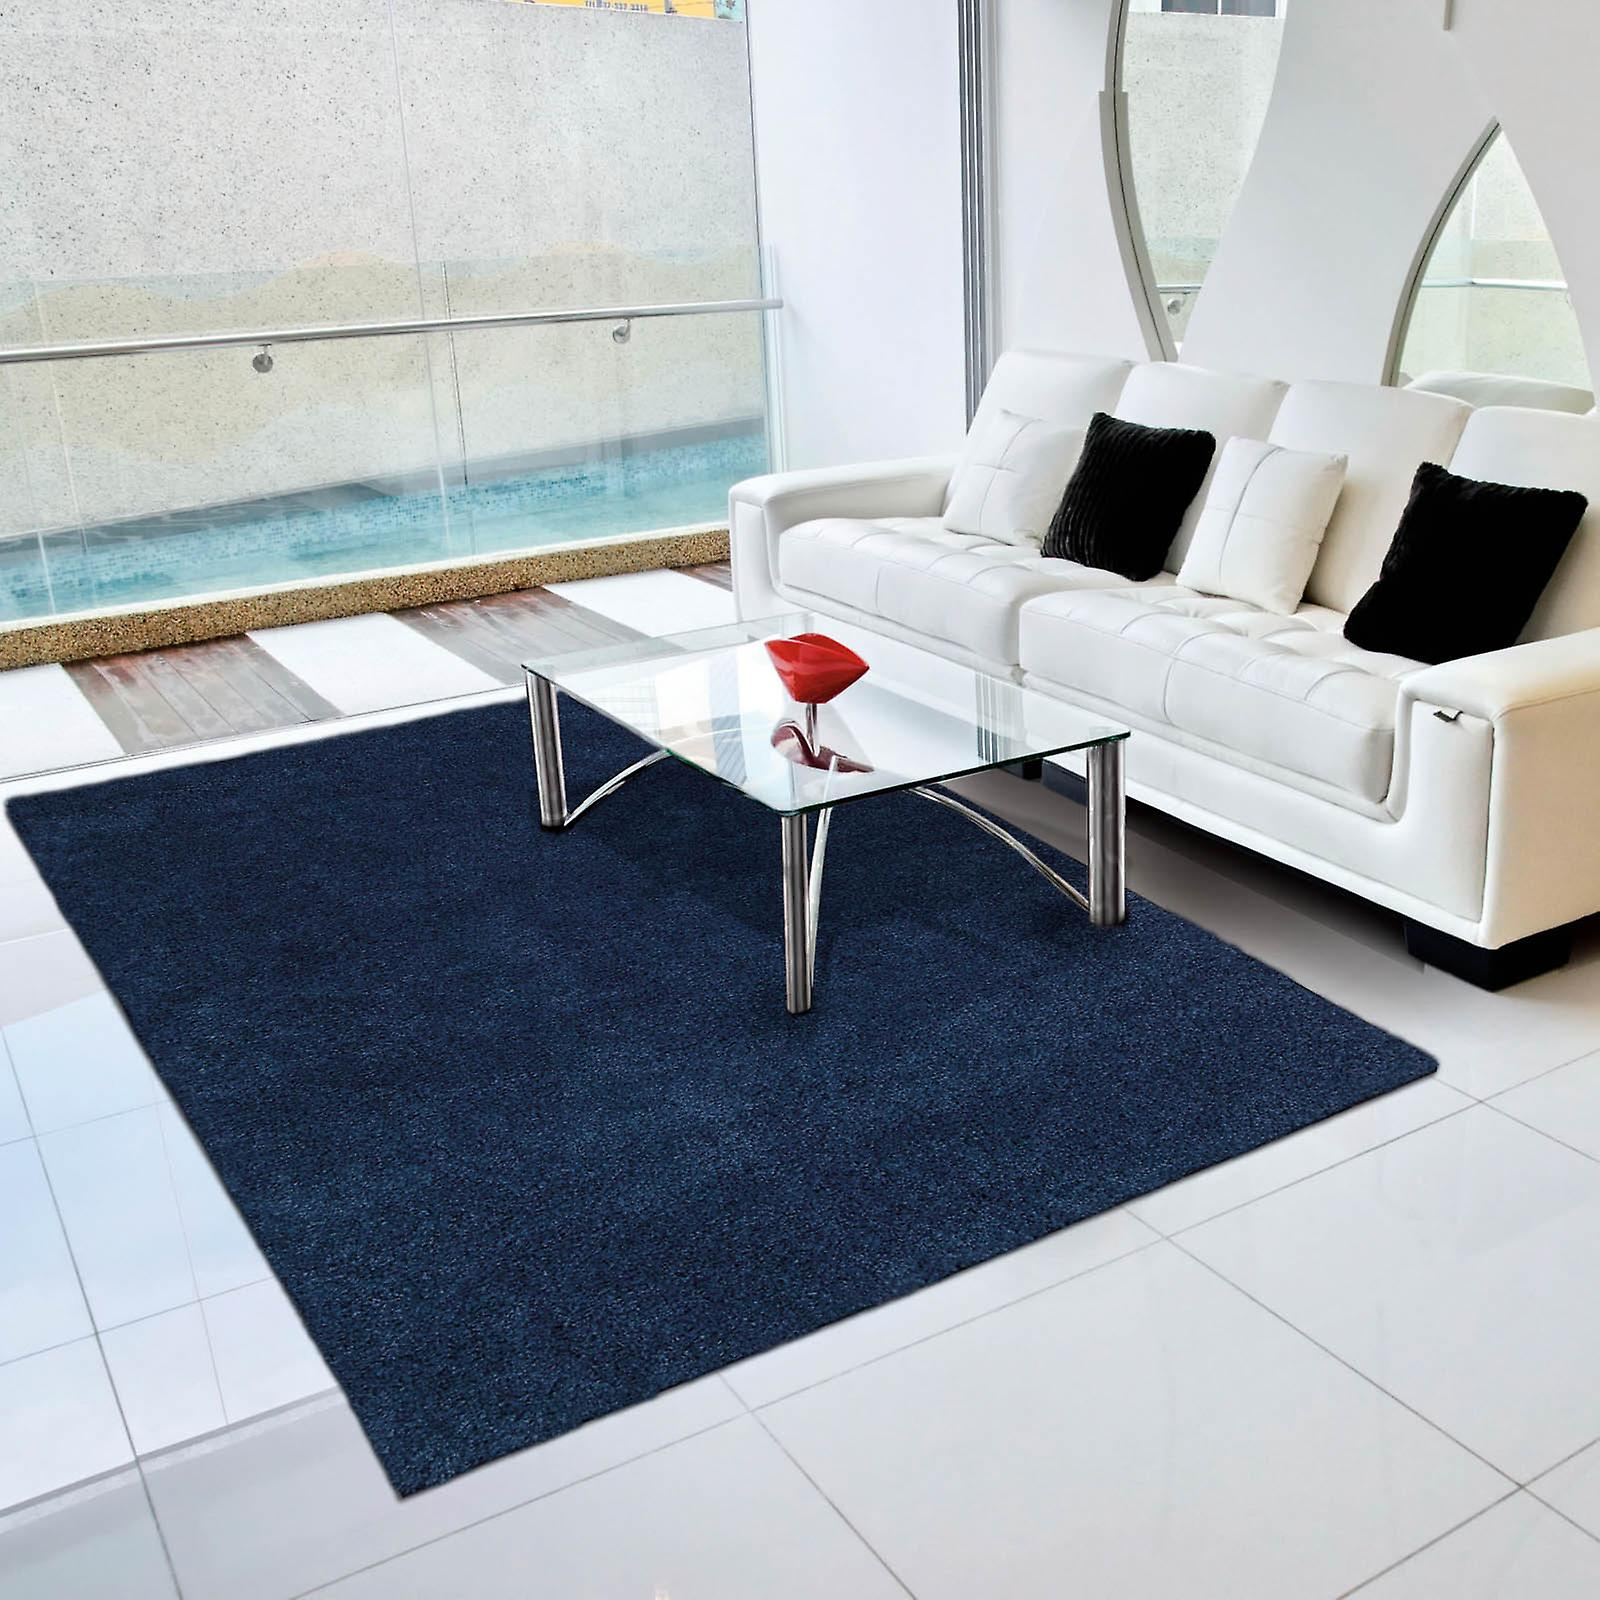 Nourison Amore Amor1 Shaggy Rugs In Ink Blue